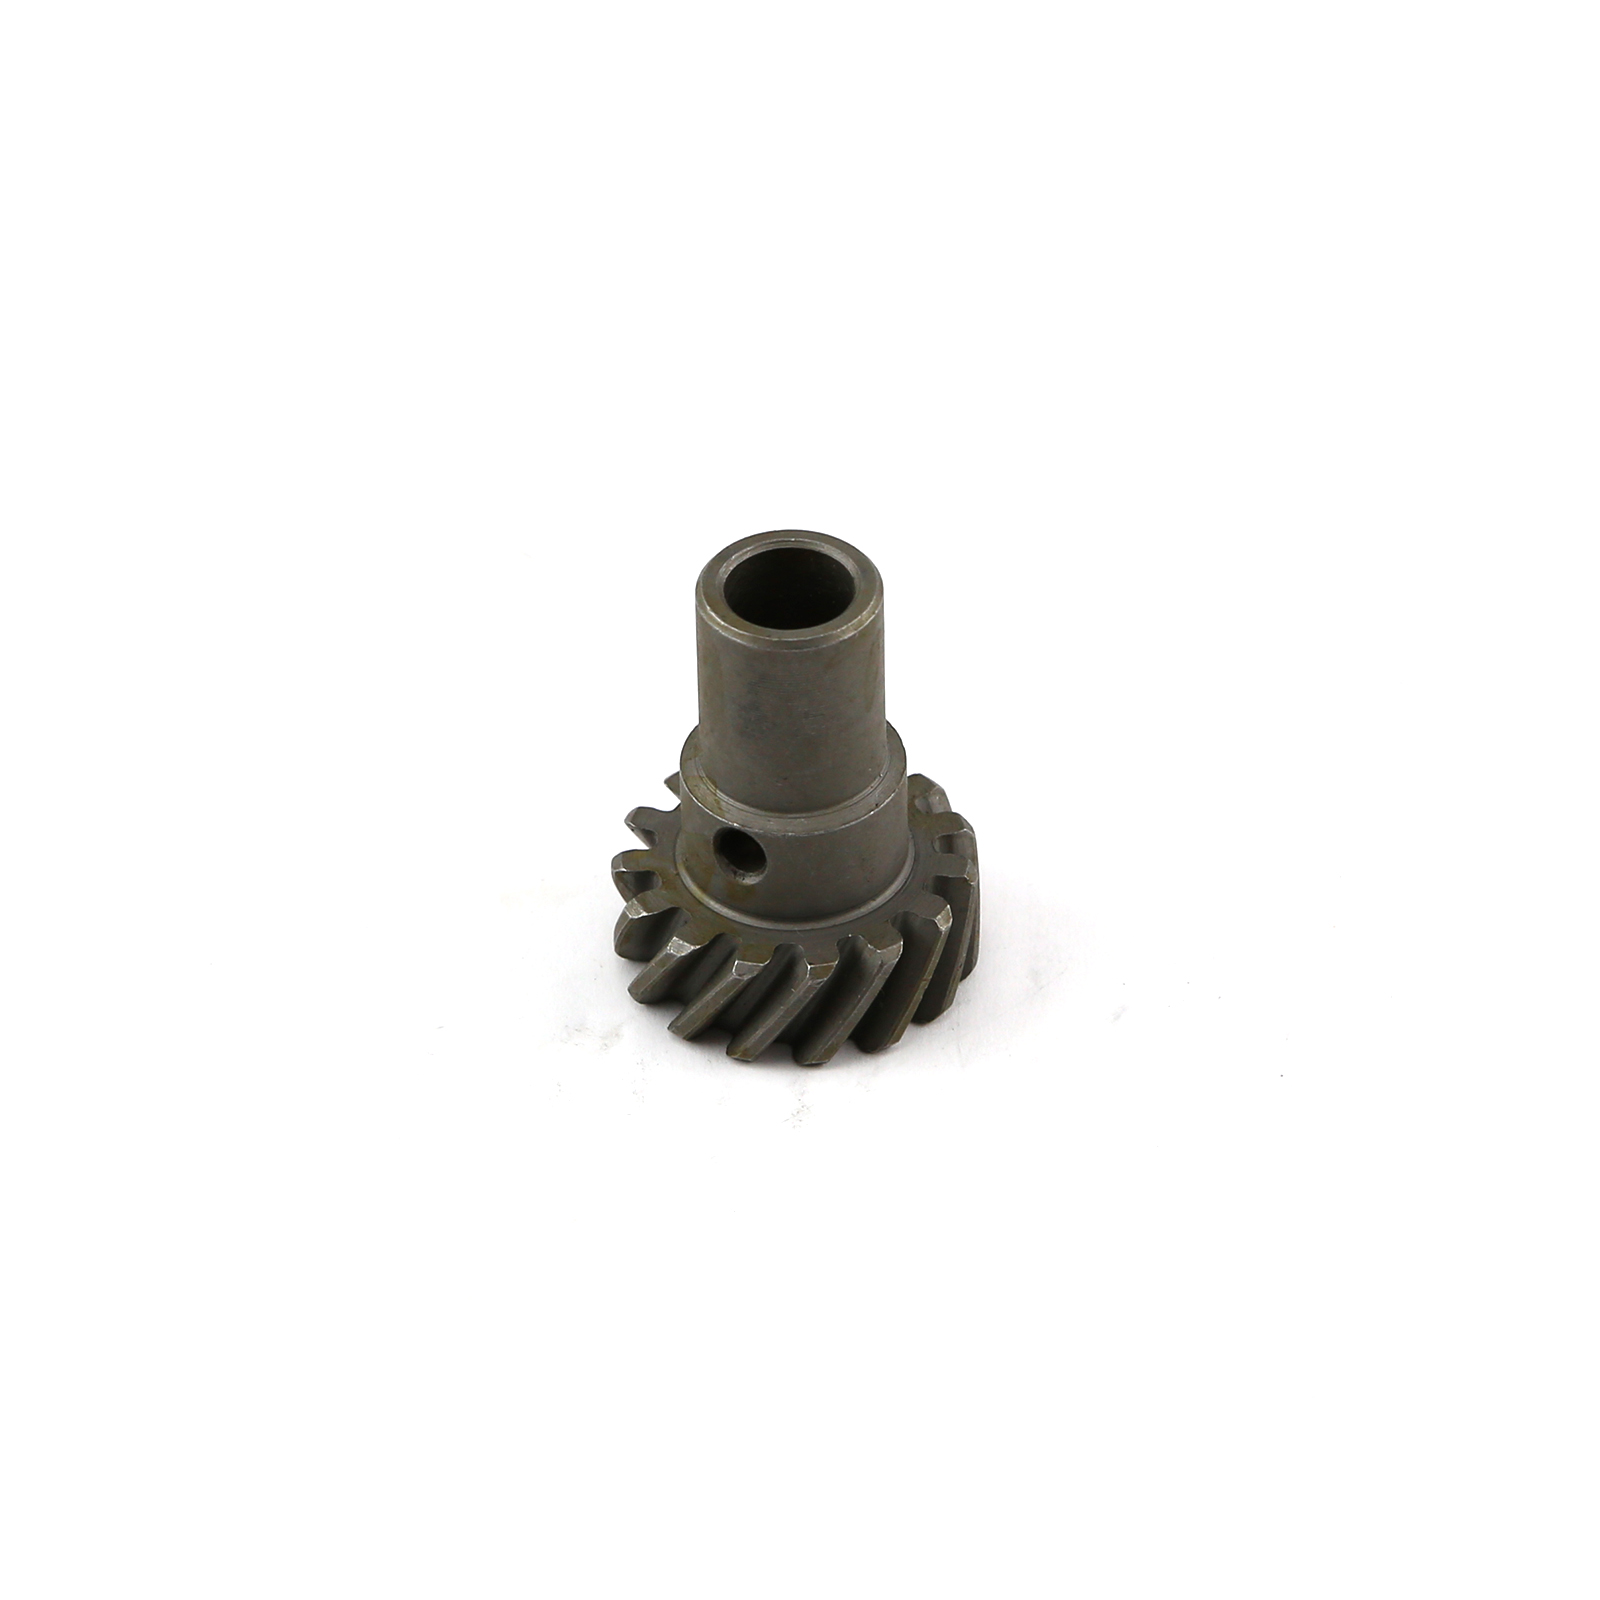 "Ford SB 289 302 351 Windsor Cast 0.500"" Shaft Distributor Gear"